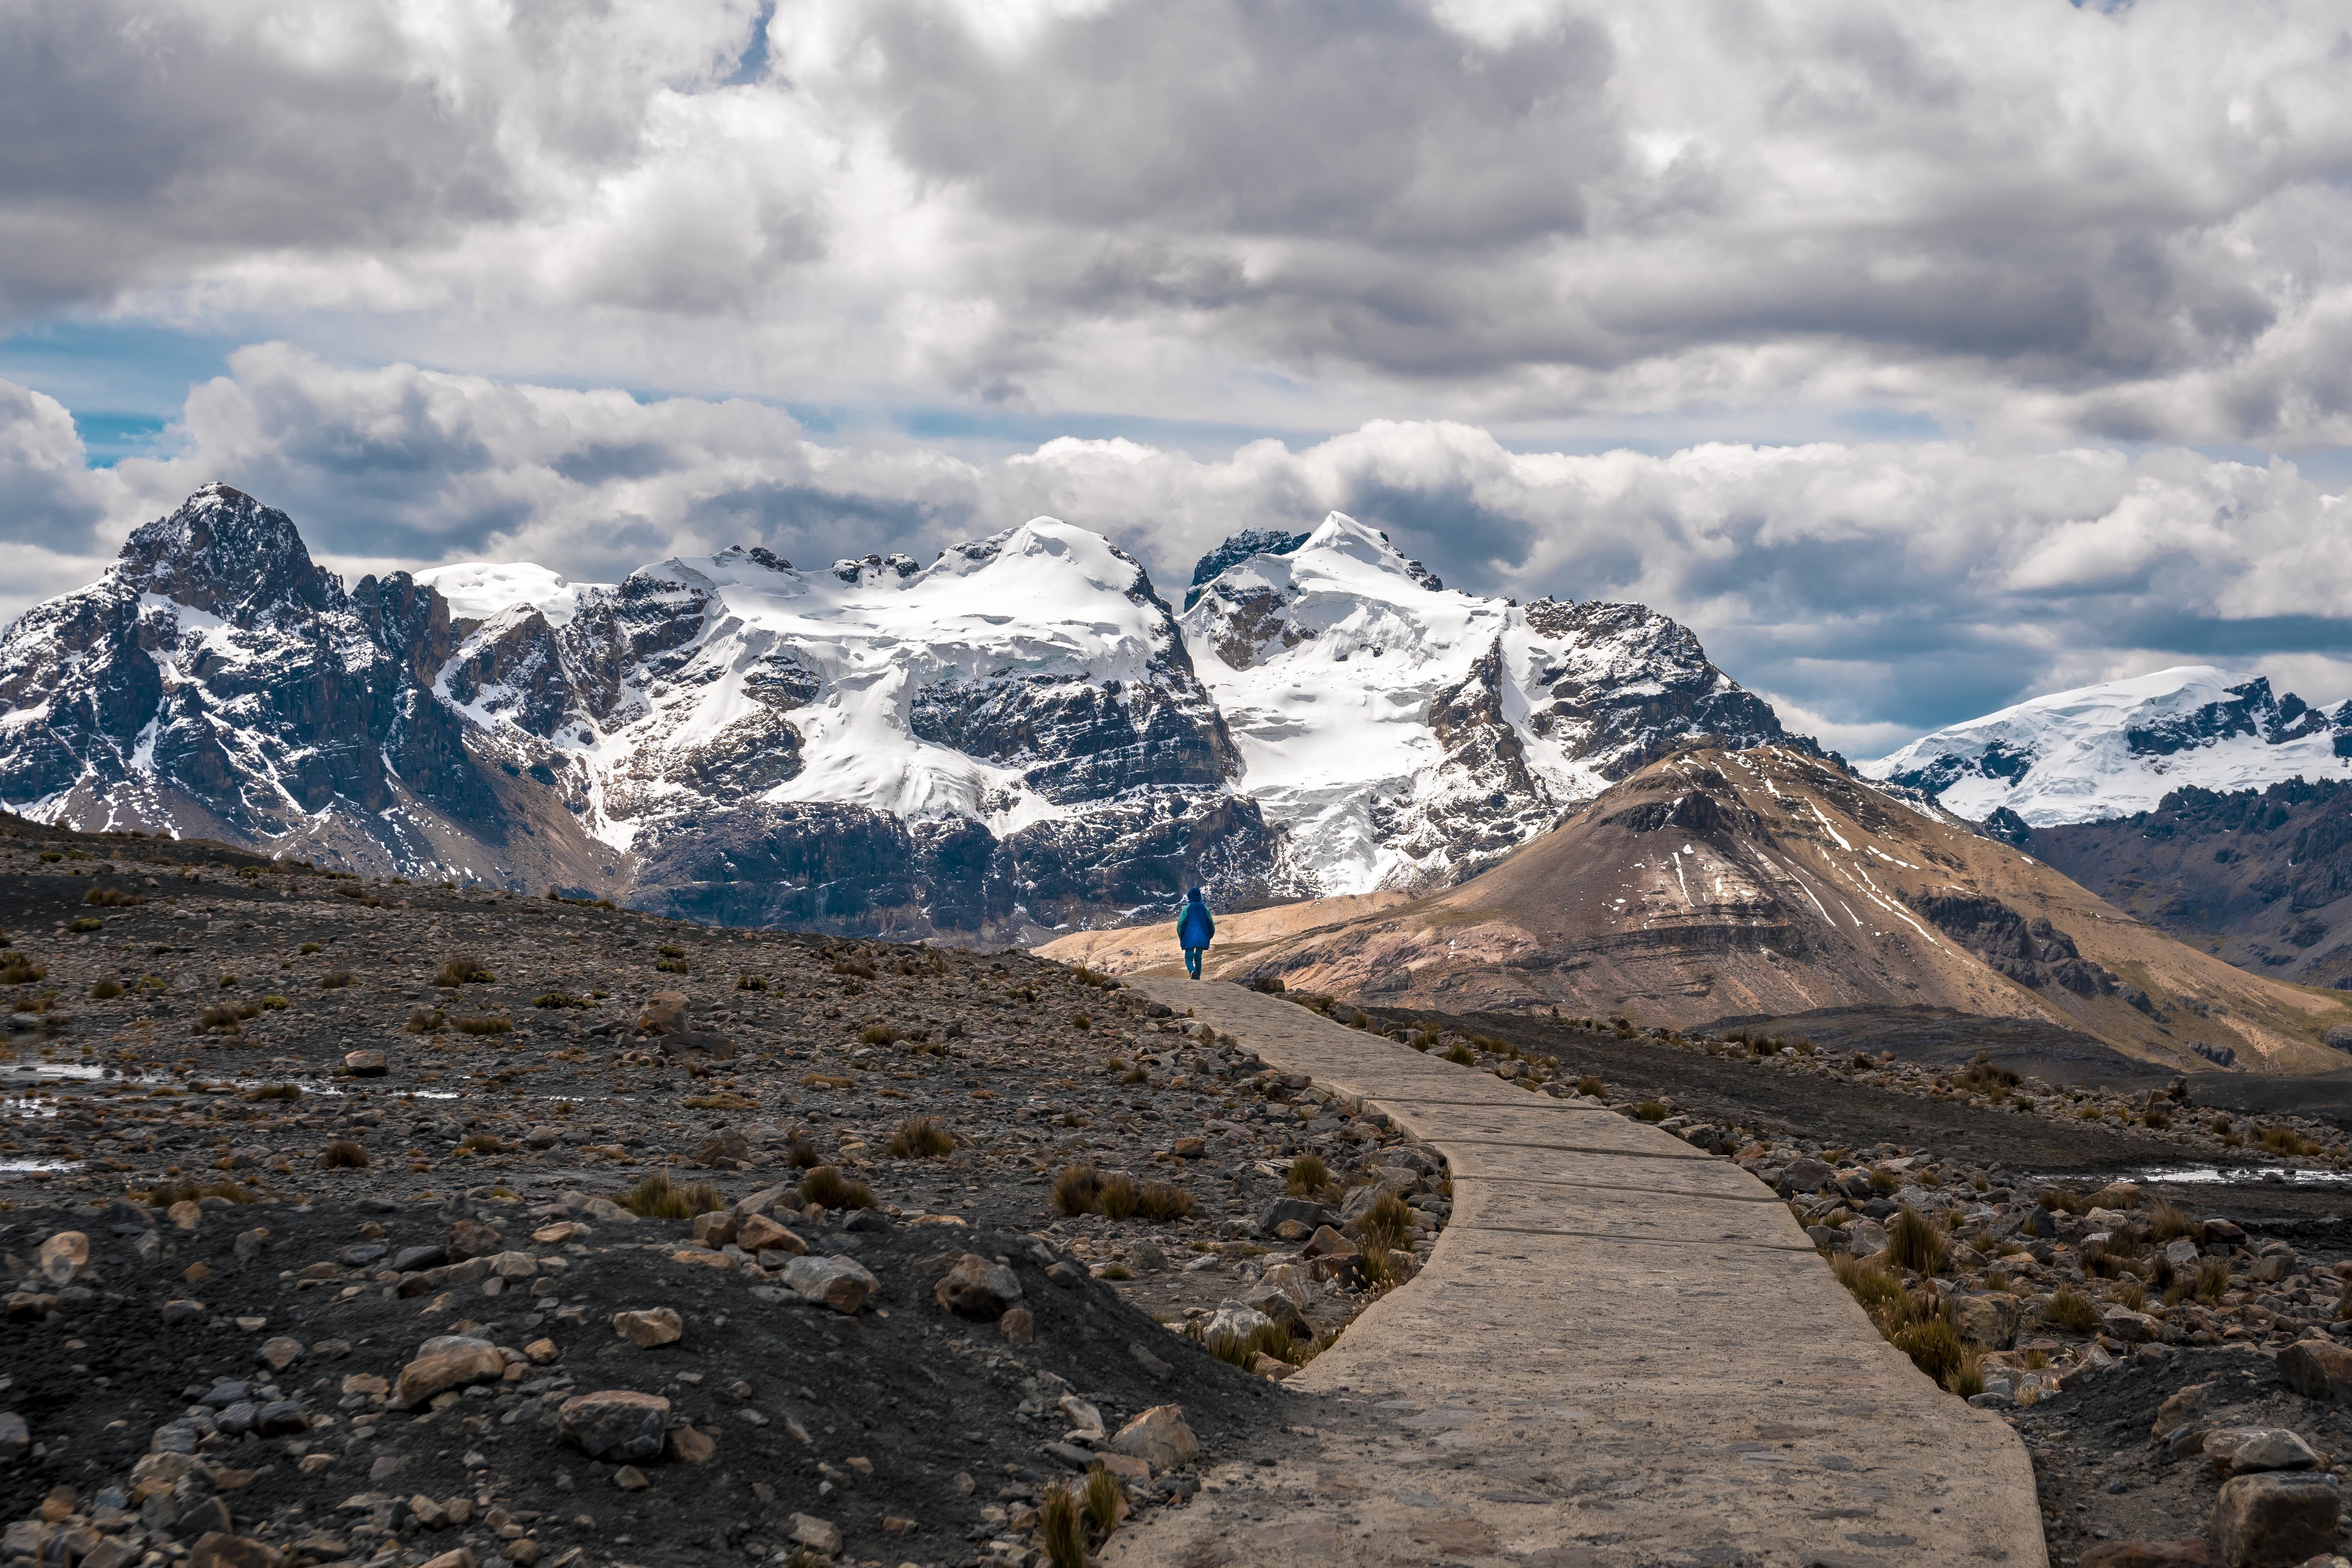 person walking toward snow-capped mountain